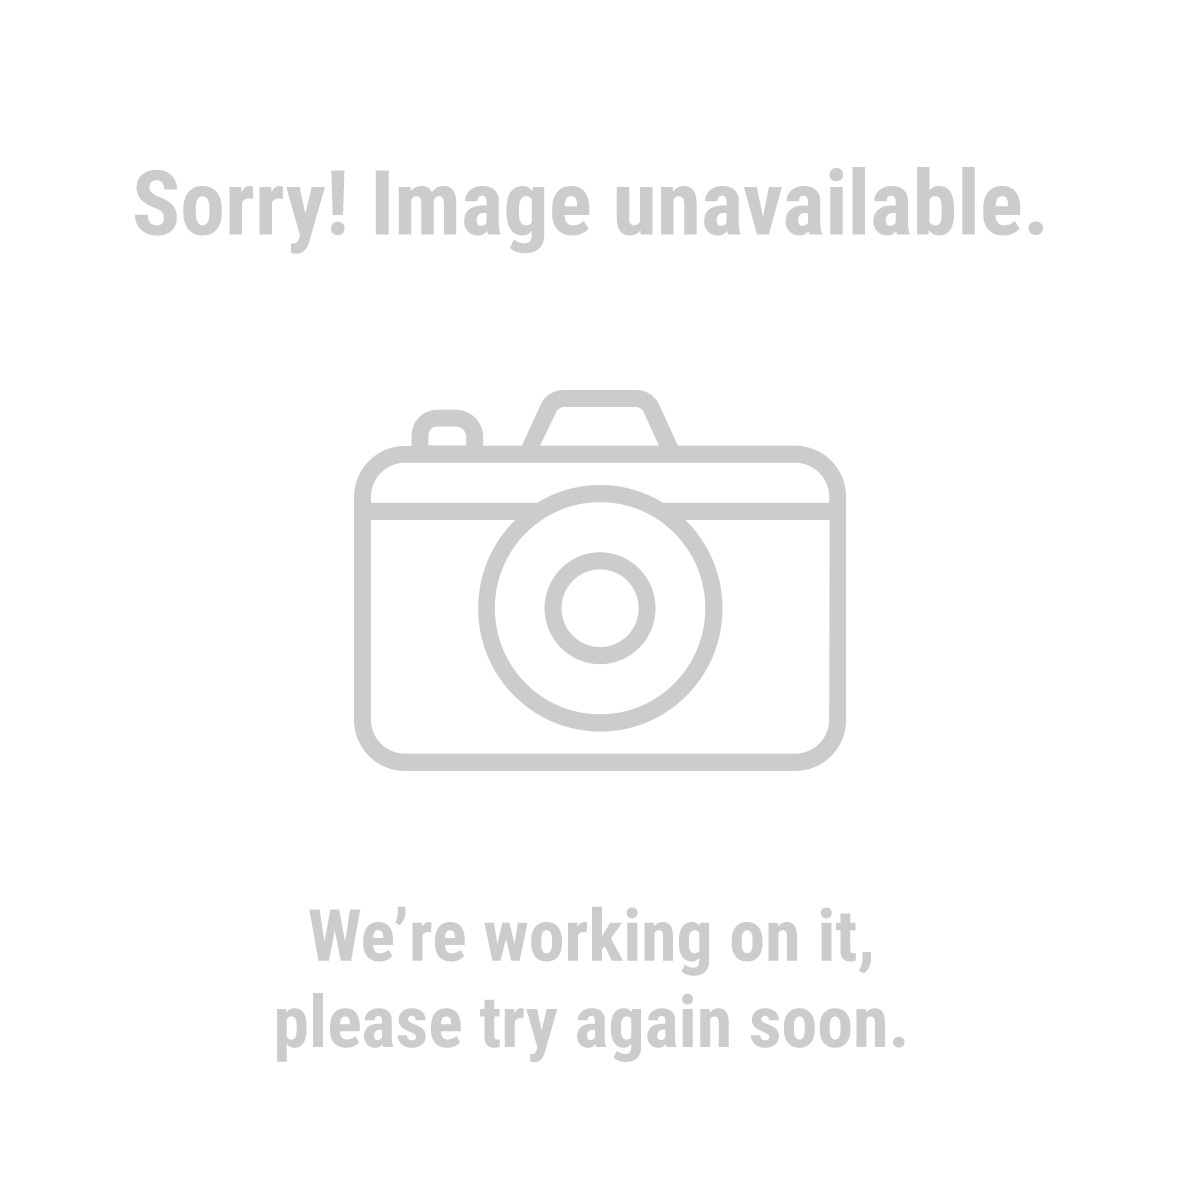 Chicago Electric 41447 50 Ft. x 14 Gauge Outdoor Extension Cord